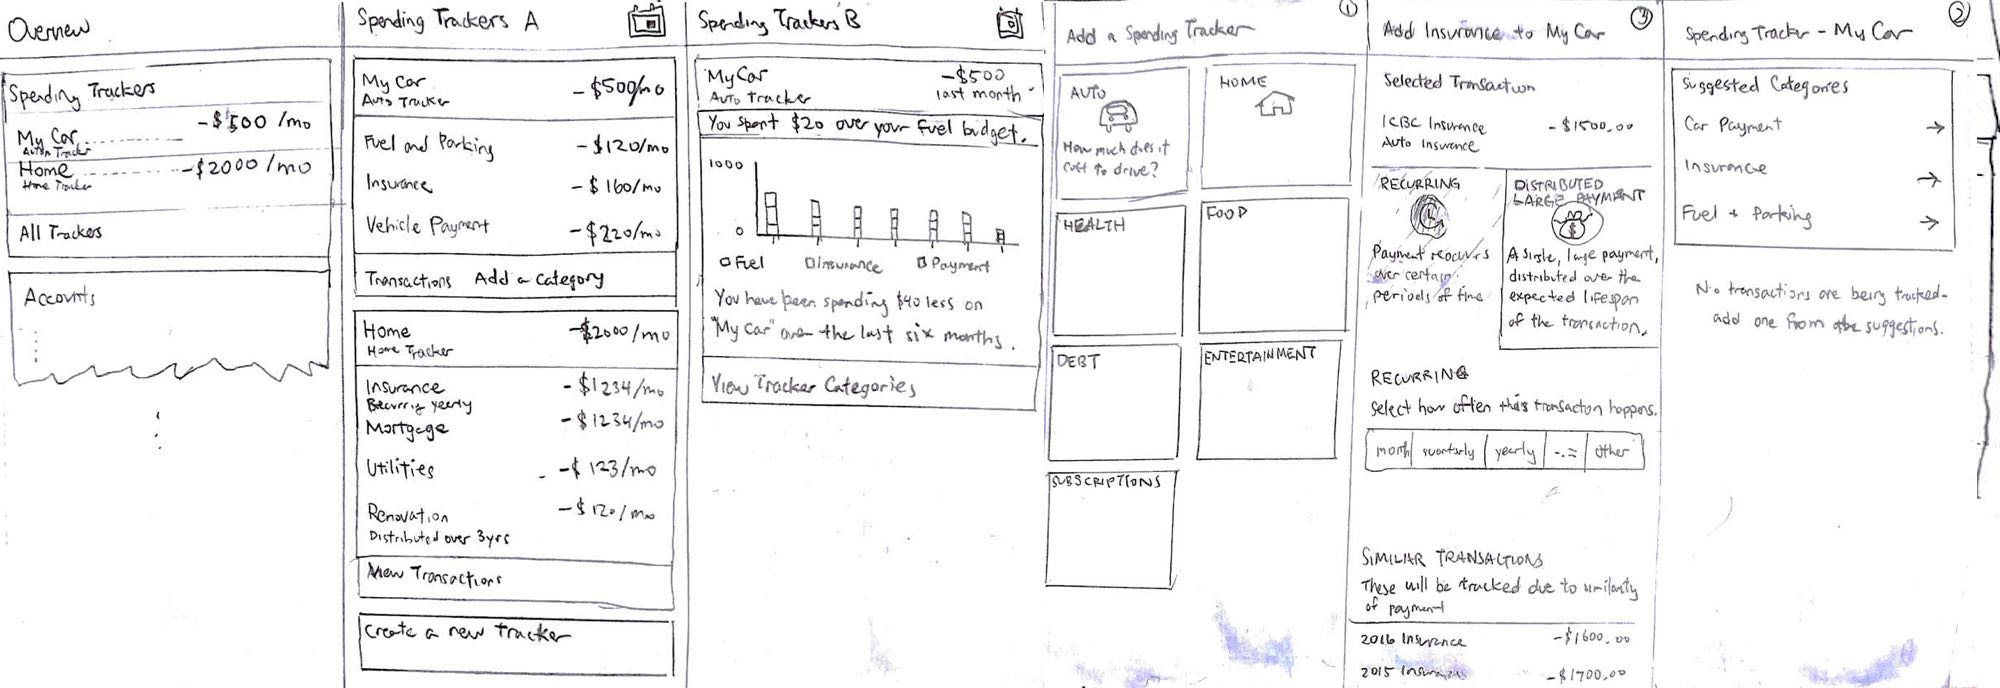 Initial wireframing for a previous iteration